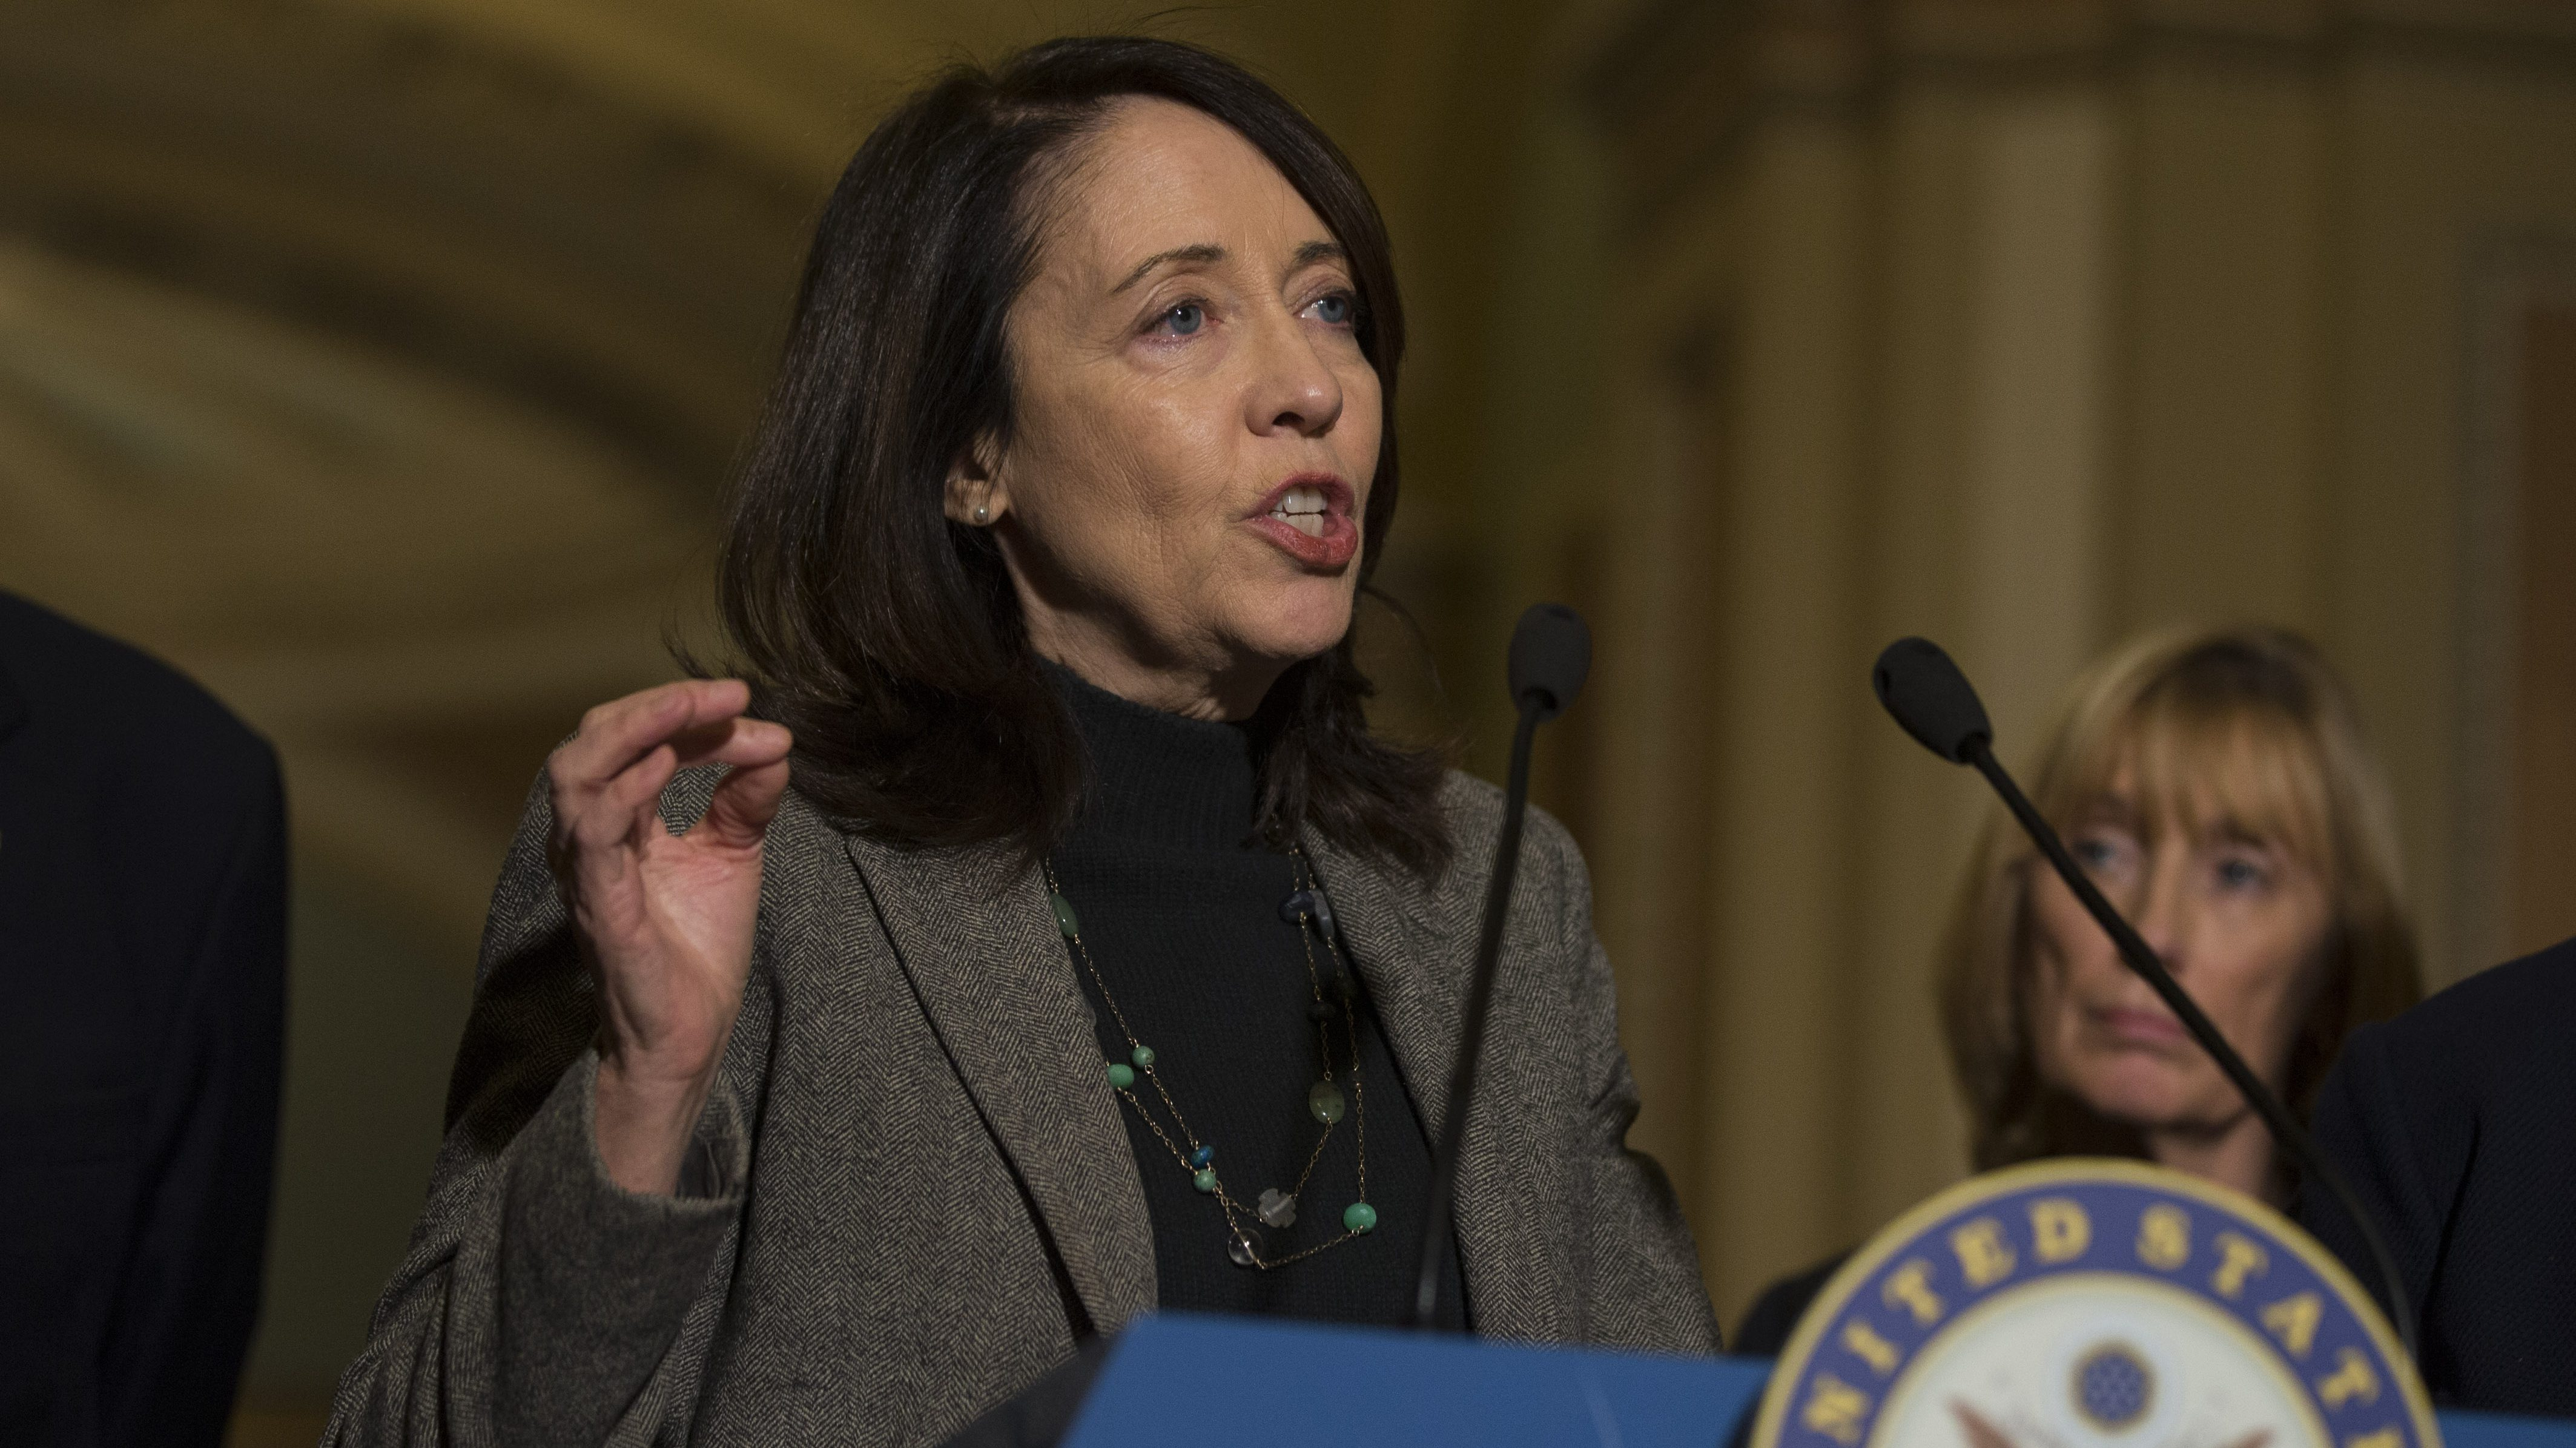 United States Senator, Maria Cantwell, Democrat of Washington, speaks with reporters following the weekly United States Senate Democratic Party policy luncheons on Capitol Hill on November 14th, 2017 in Washington, D.C. Credit: Alex Edelman / MediaPunch/IPX